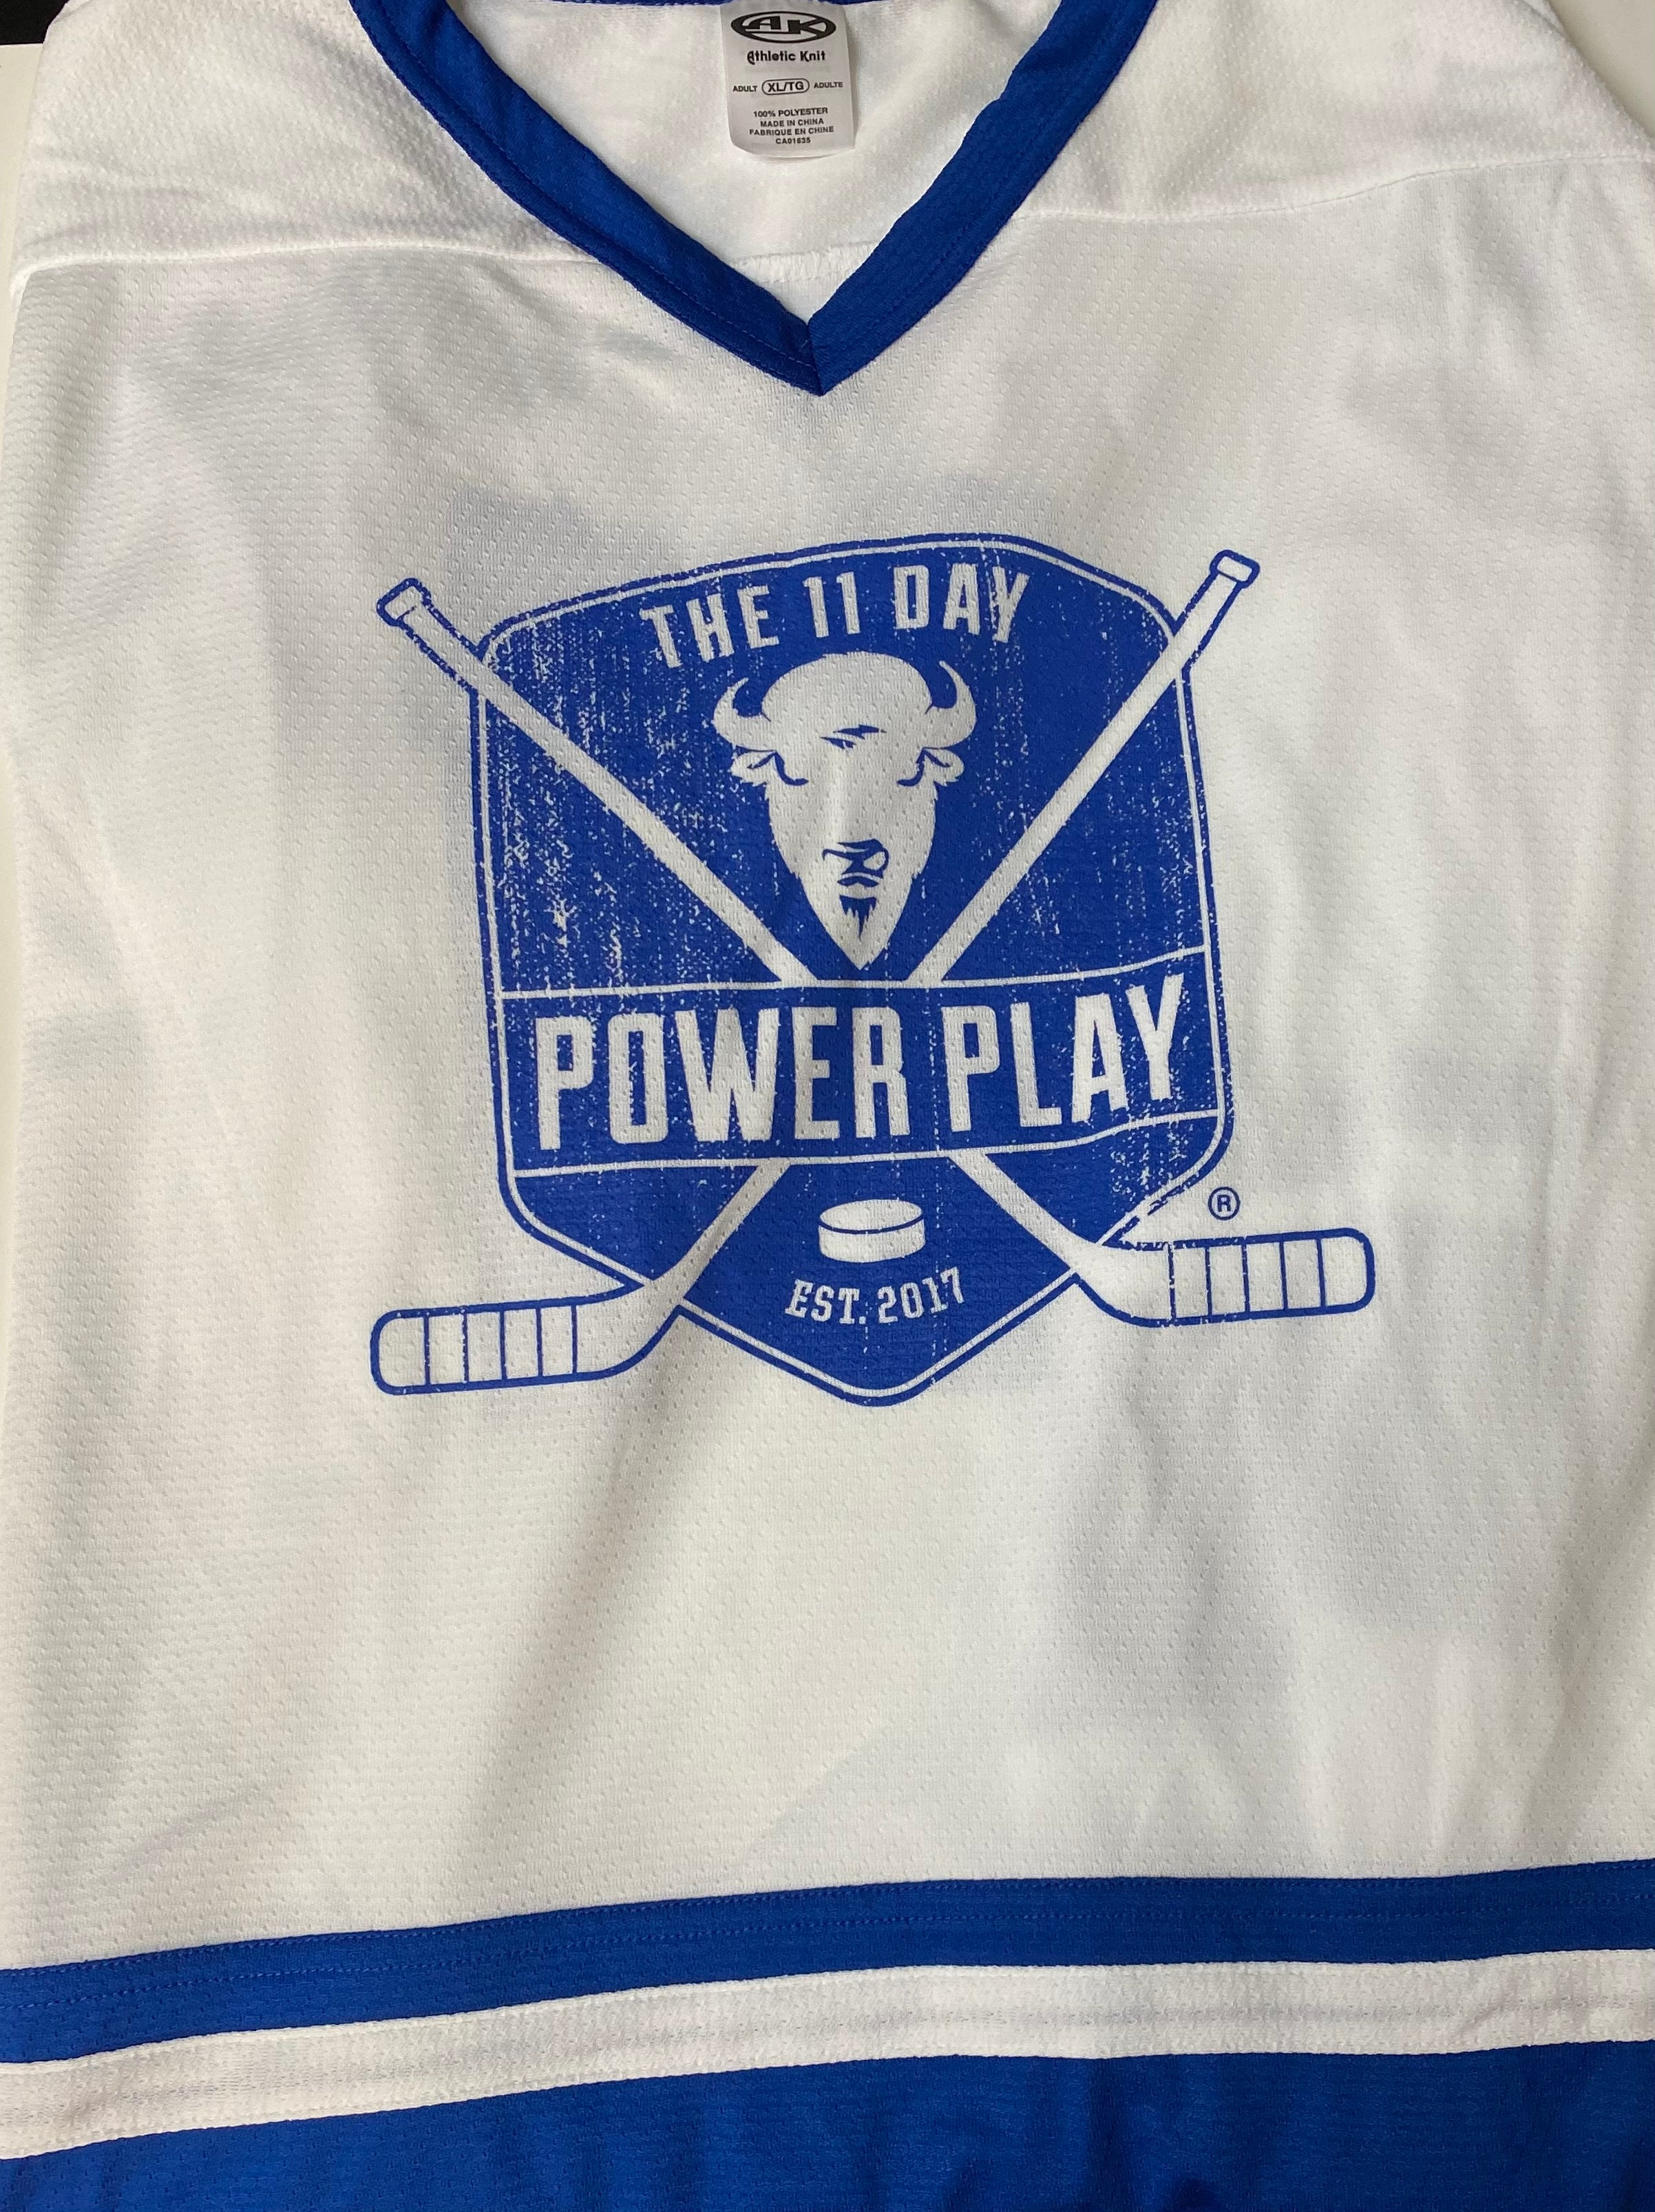 White/ Royal Blue Jersey (Colon Cancer)